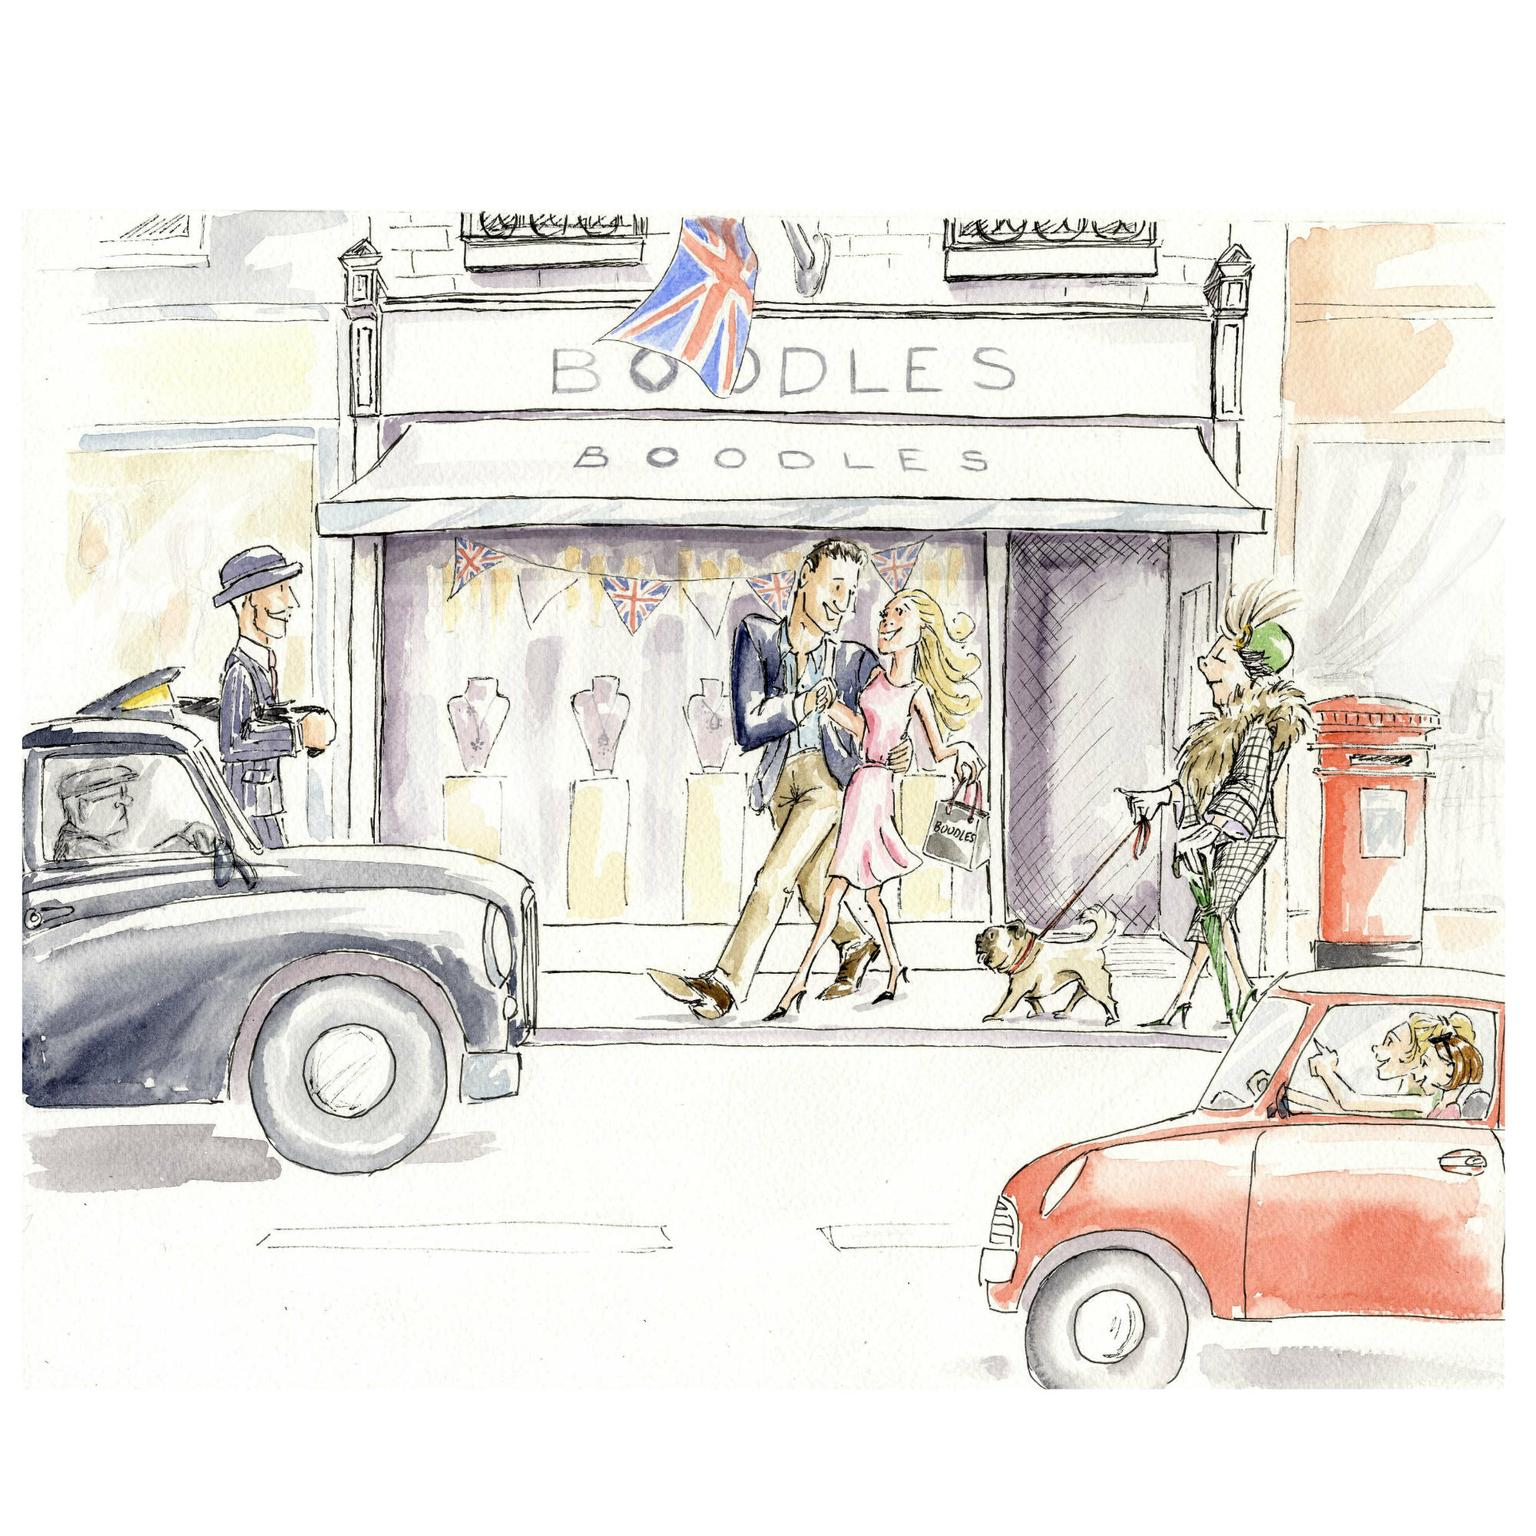 Sketch of the newly remodelled Boodles boutique on Bond Street